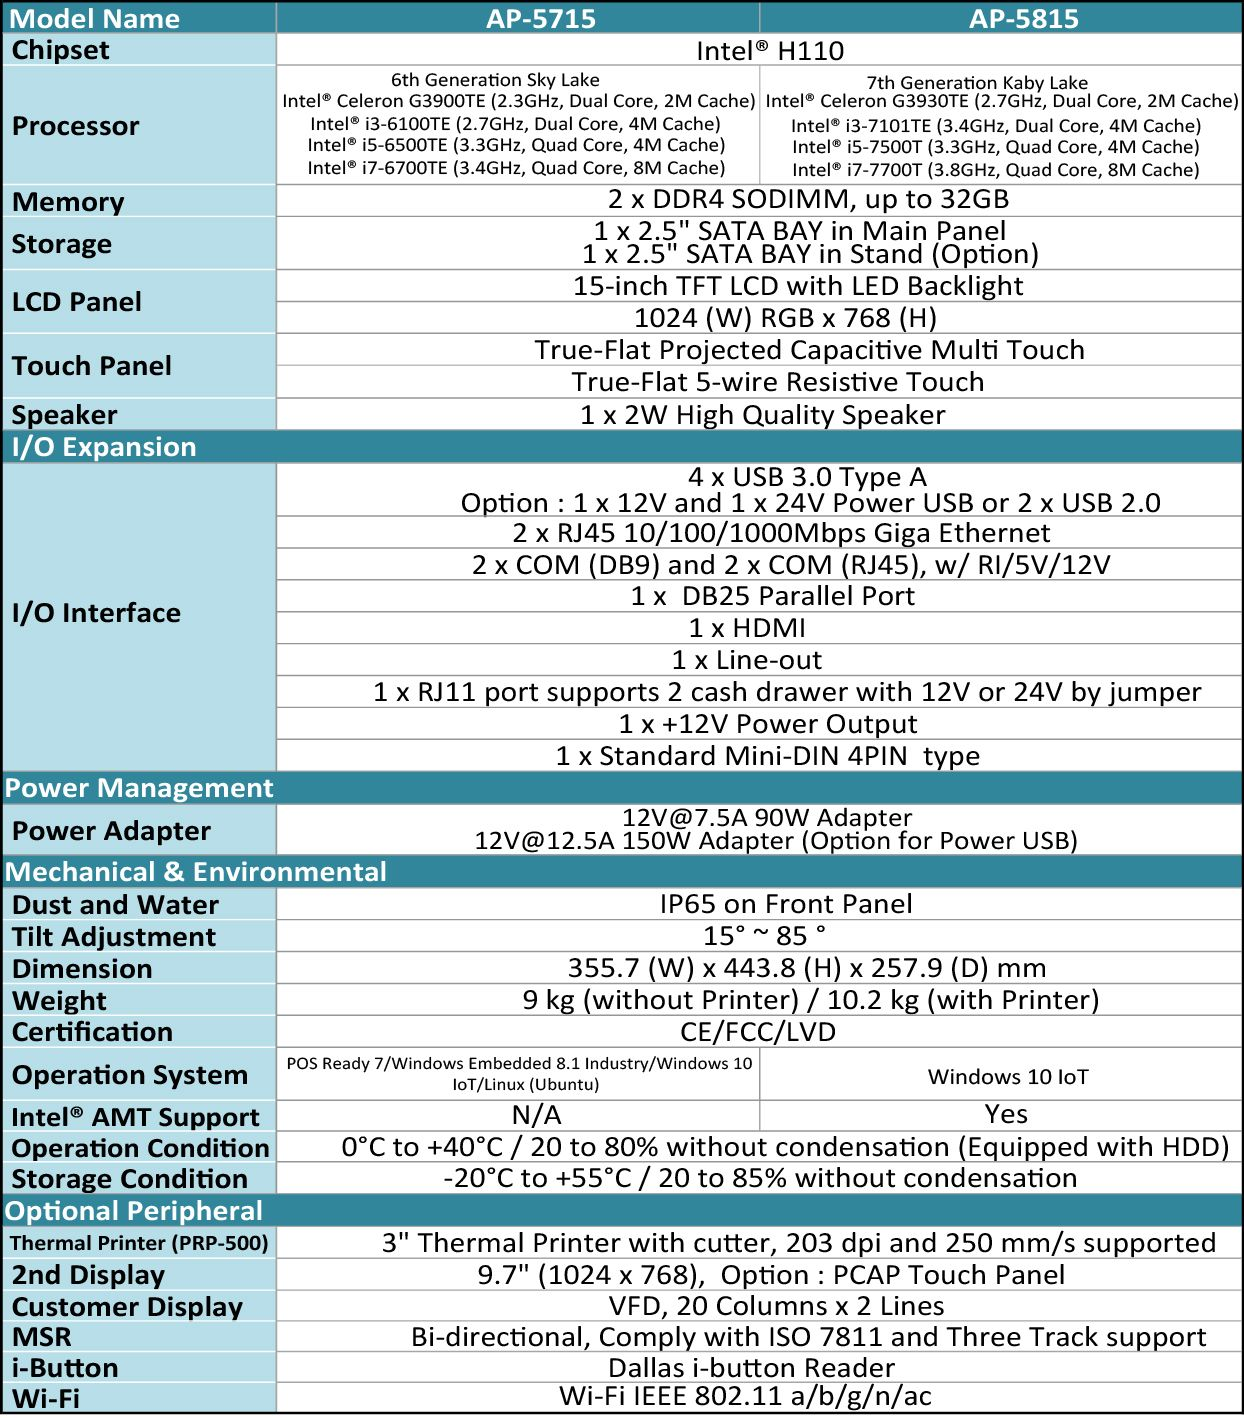 Specification of AP-5715